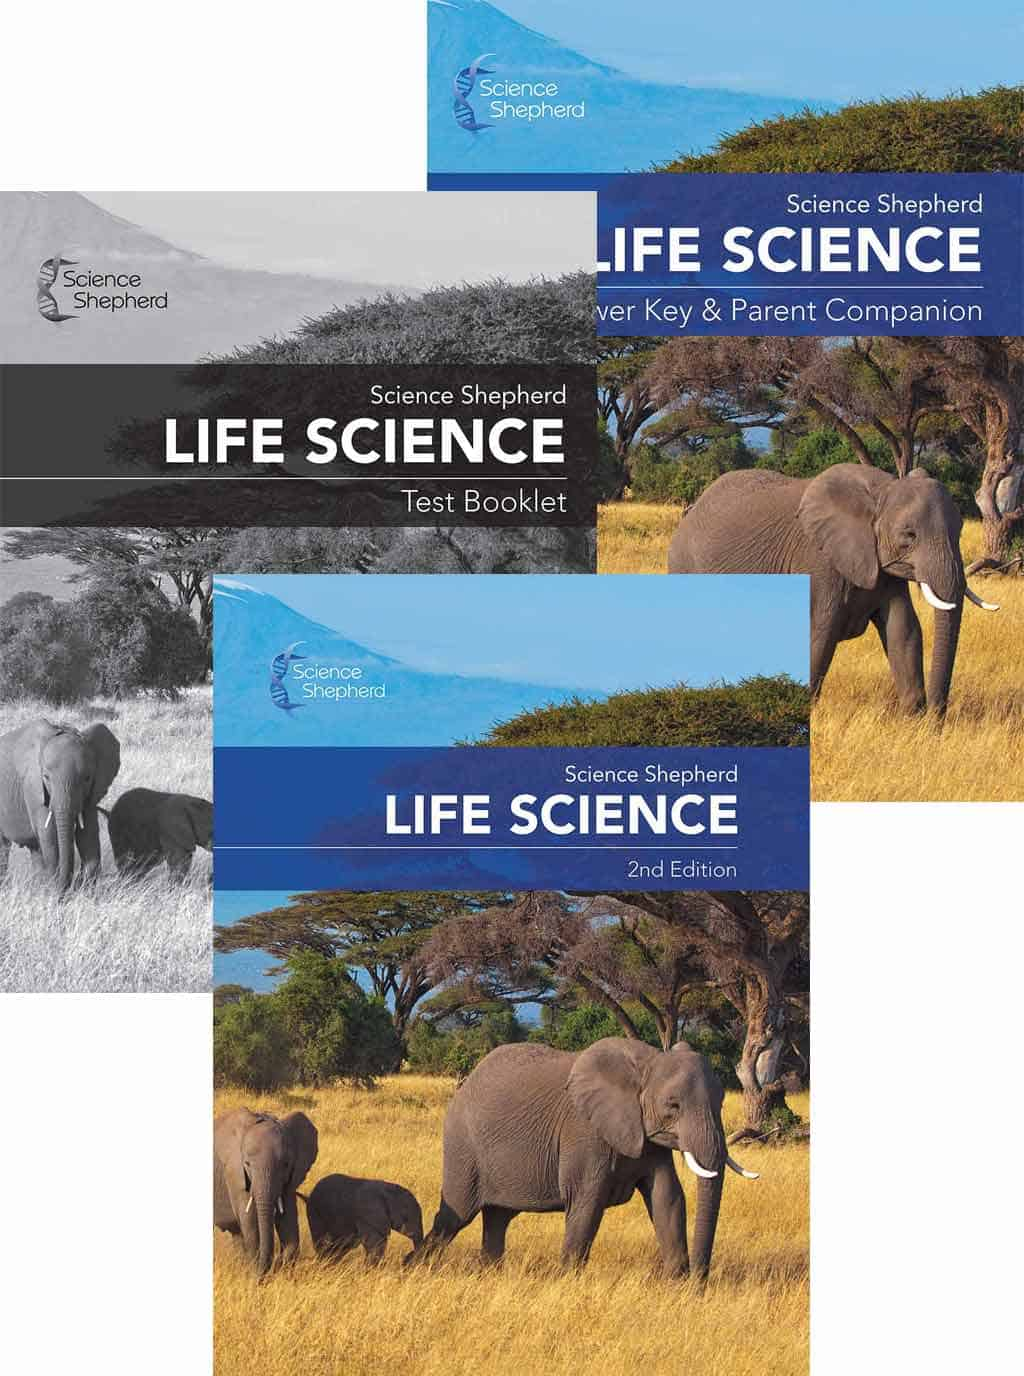 Science Shepherd Life Science homeschool curriculum with textbook, test book and answer key covers